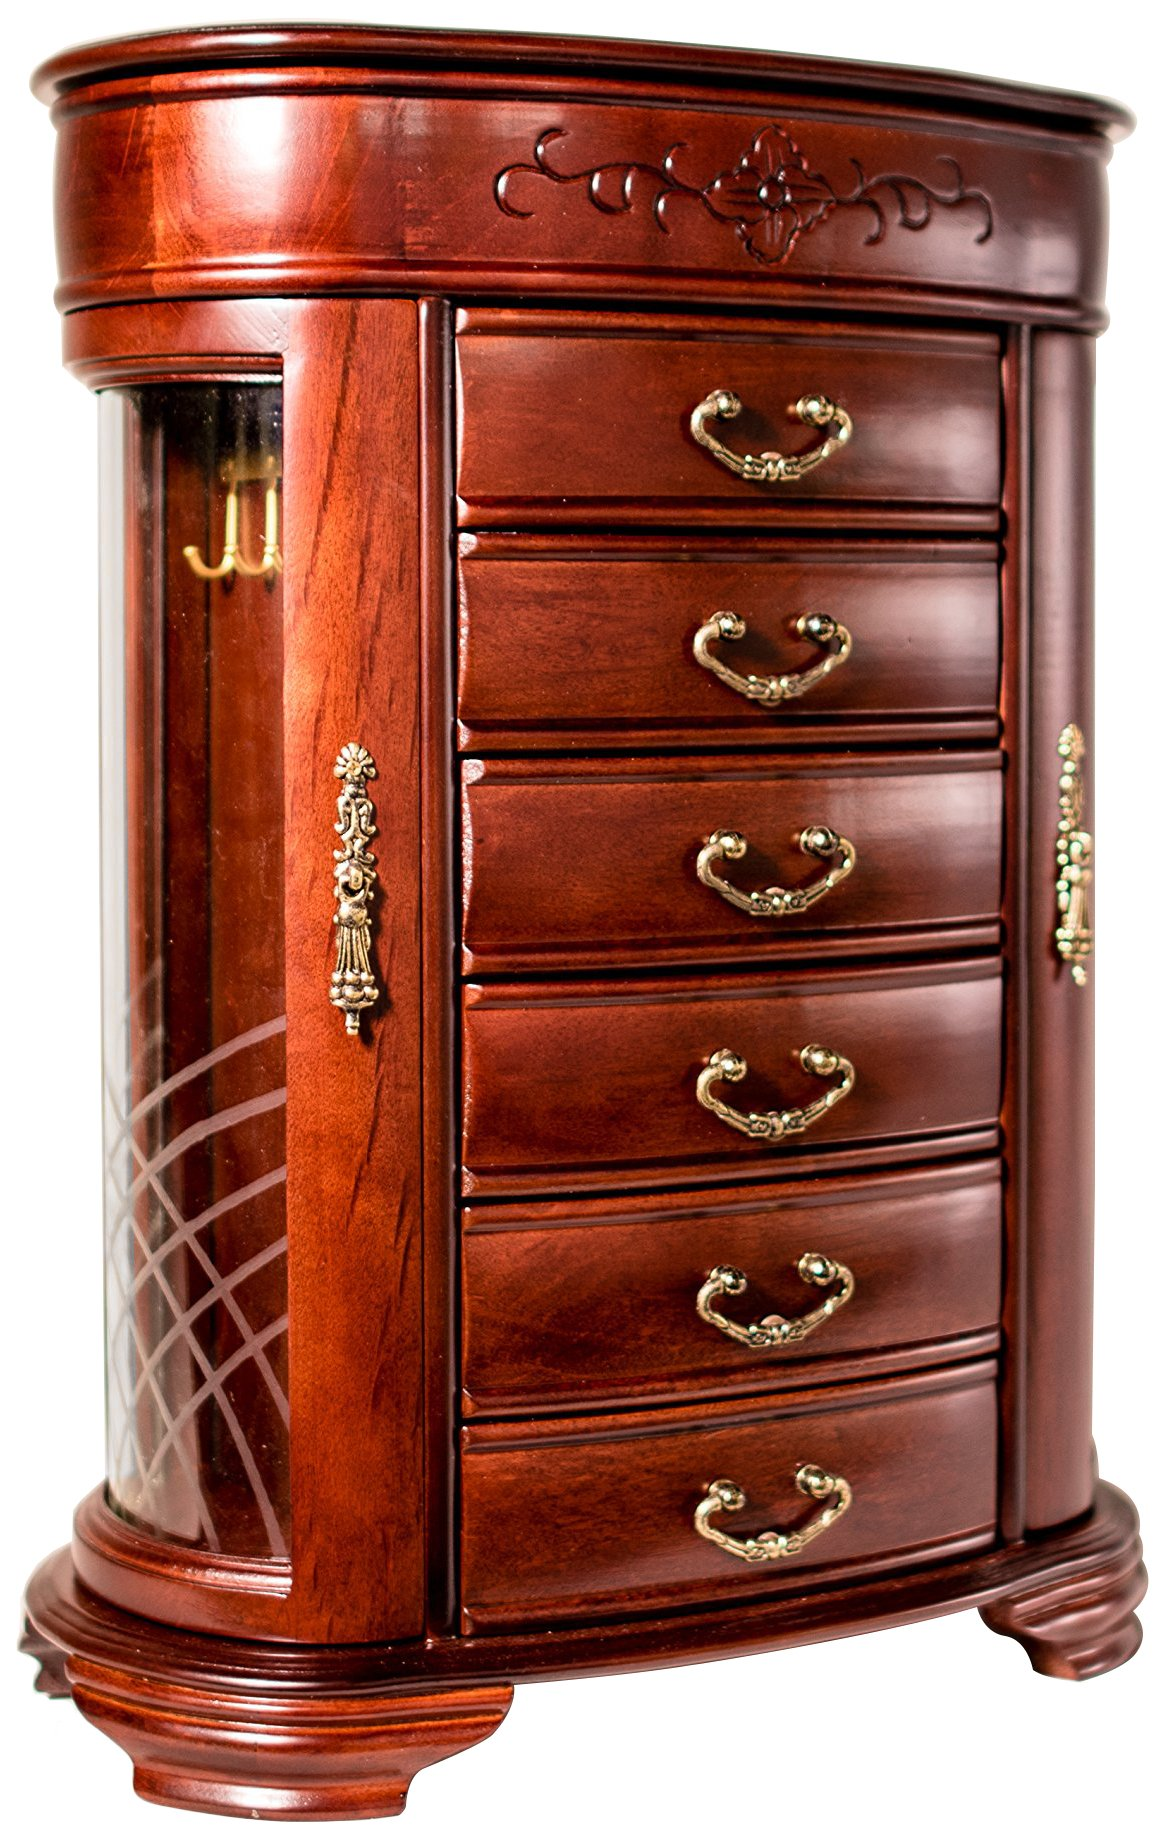 Hives and Honey Patricia Etched Glass Mahogany Jewelry Chest Jewelry Box by Hives and Honey